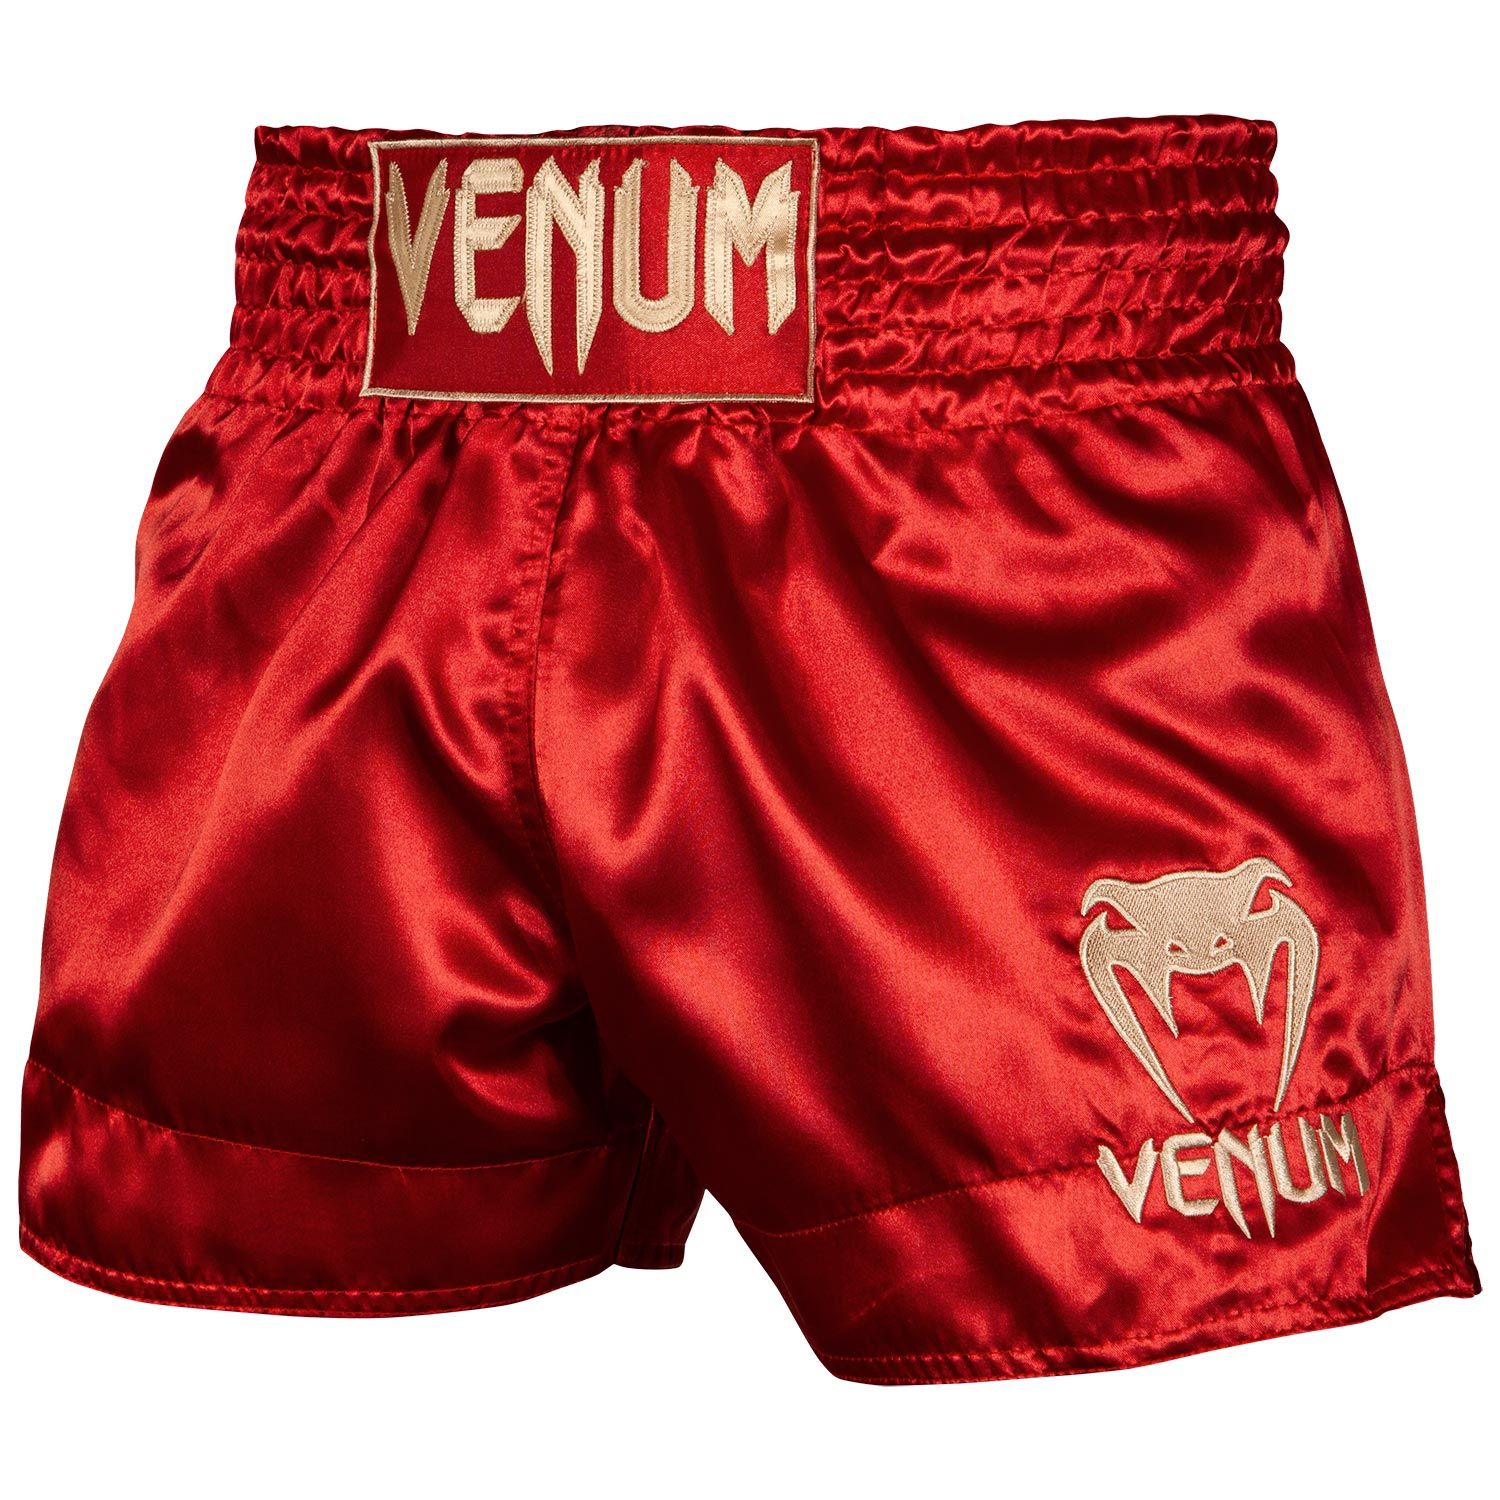 Short de Muay Thai Venum Classic - Bordeaux/Or